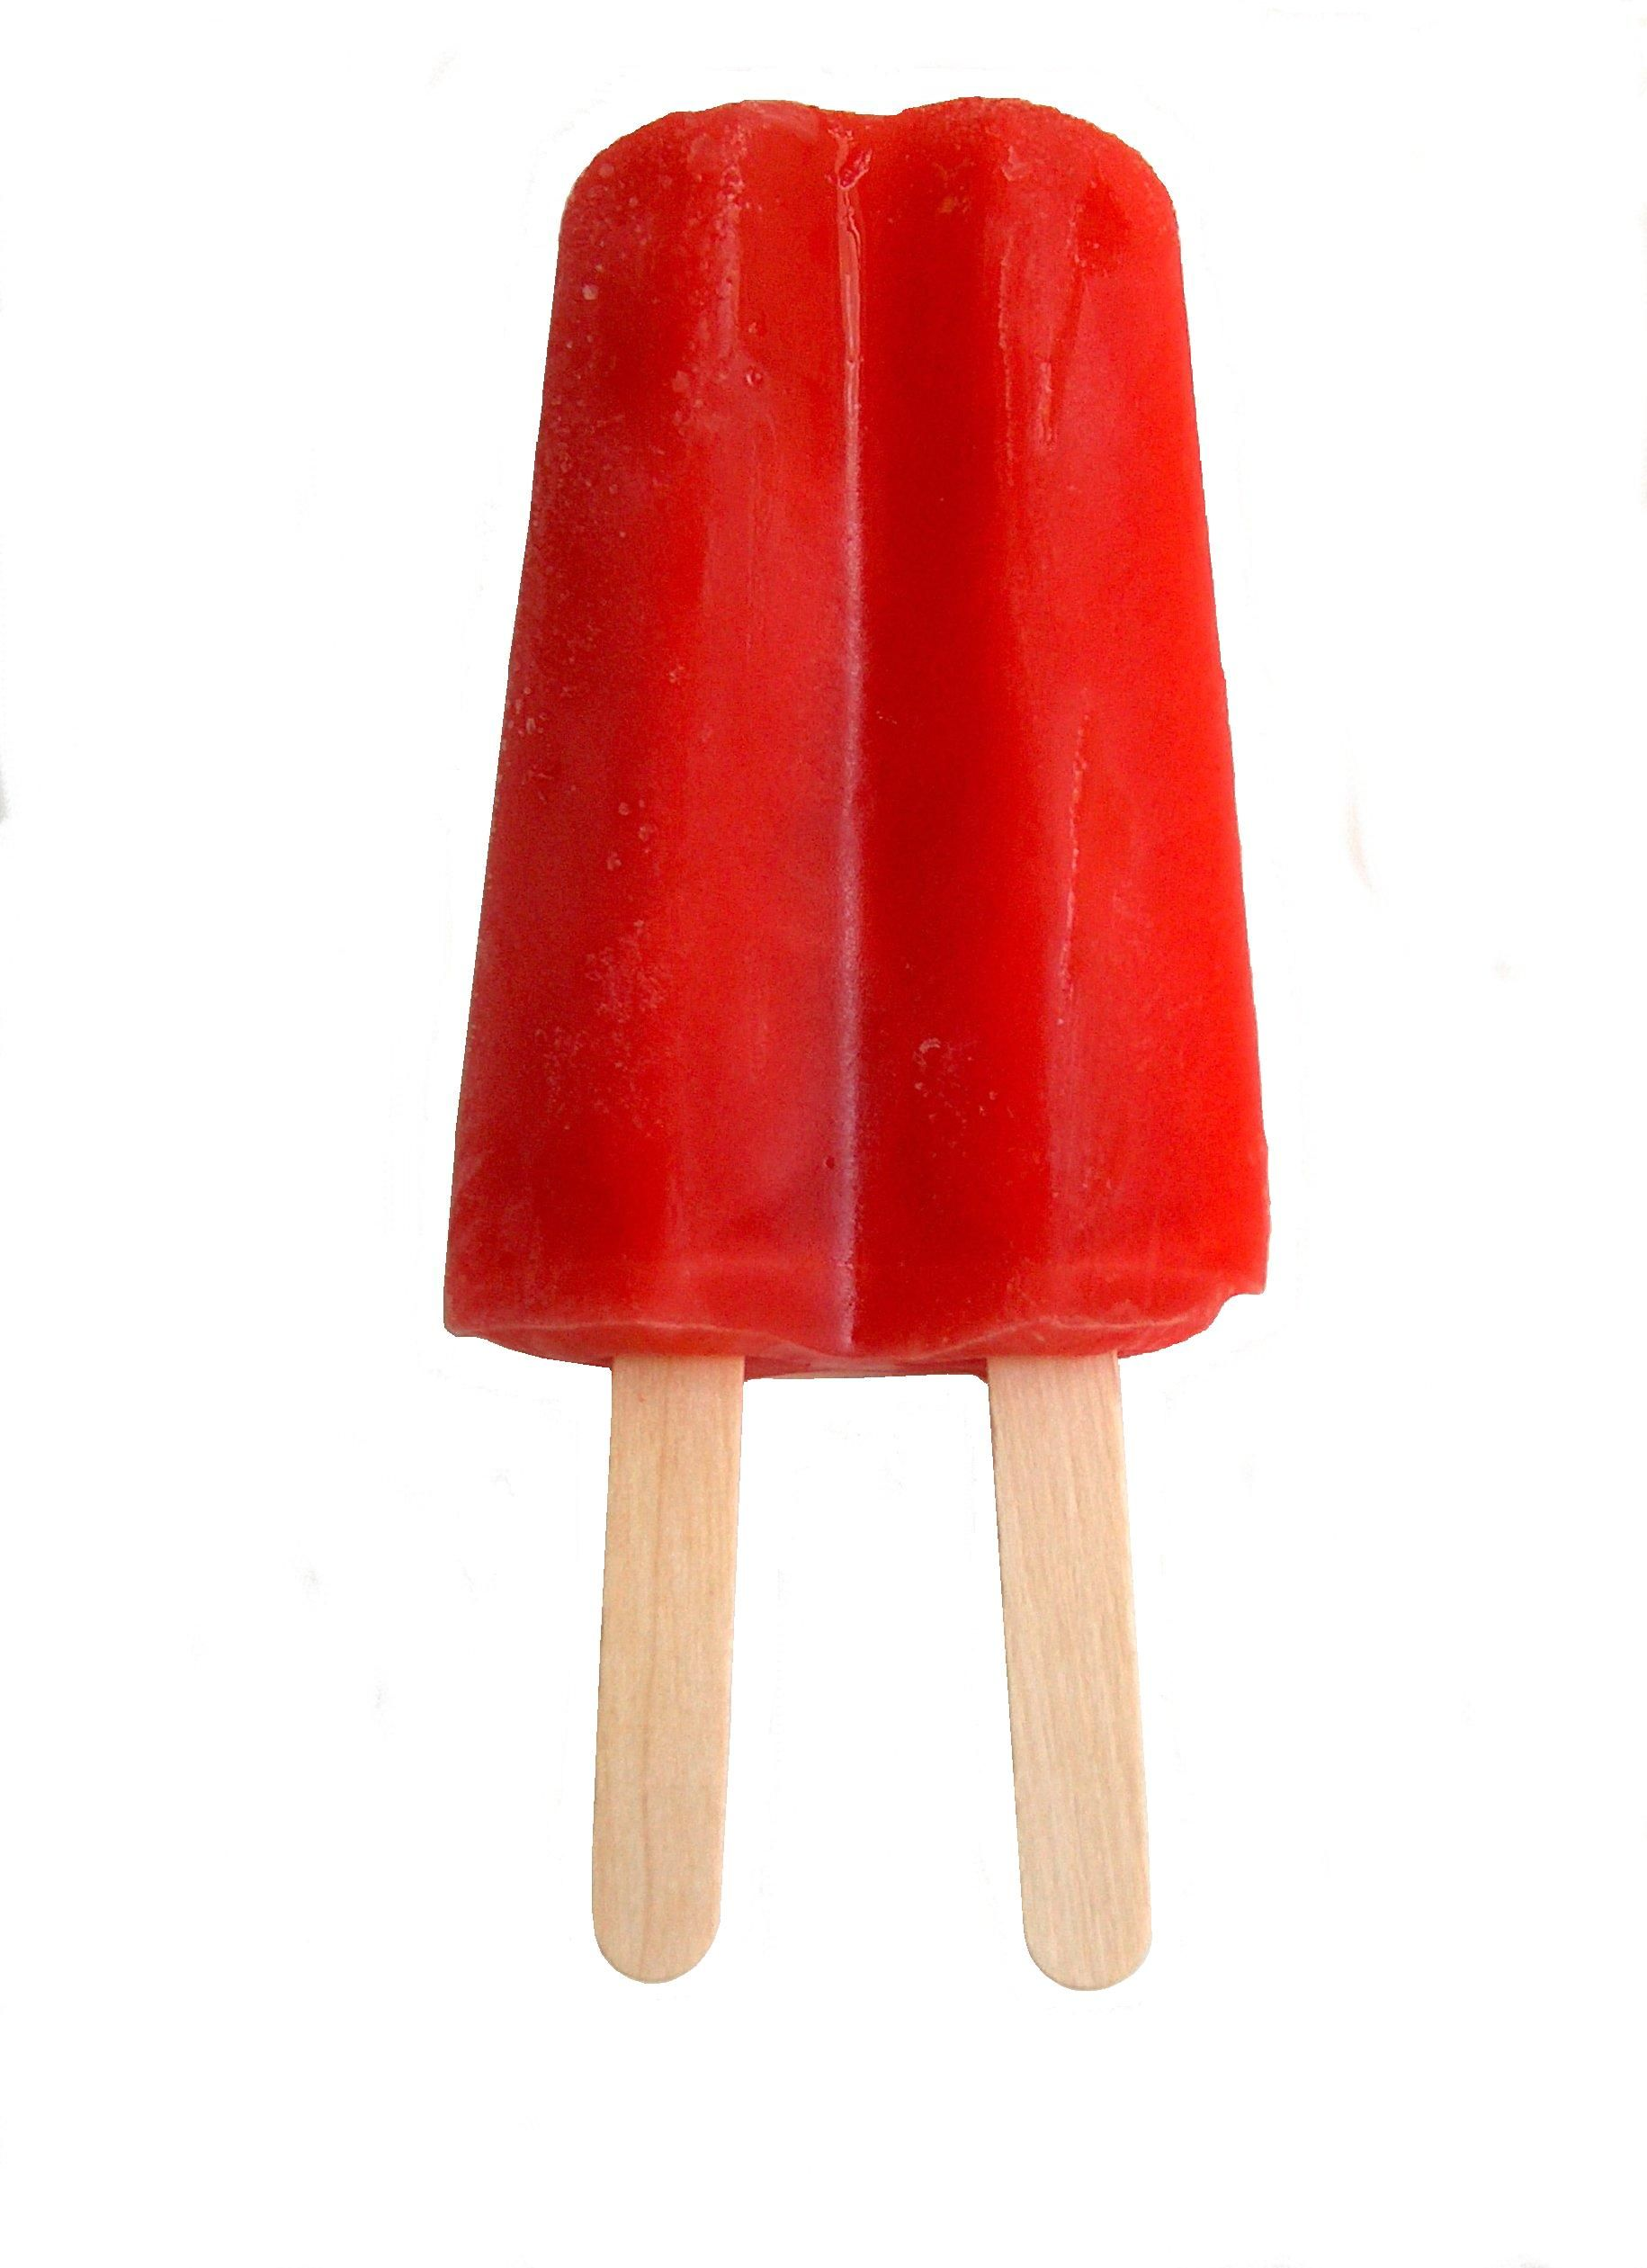 August 26th Is National Cherry Popsicle Day Cherry Popsicles Popsicles Popsicle Recipes